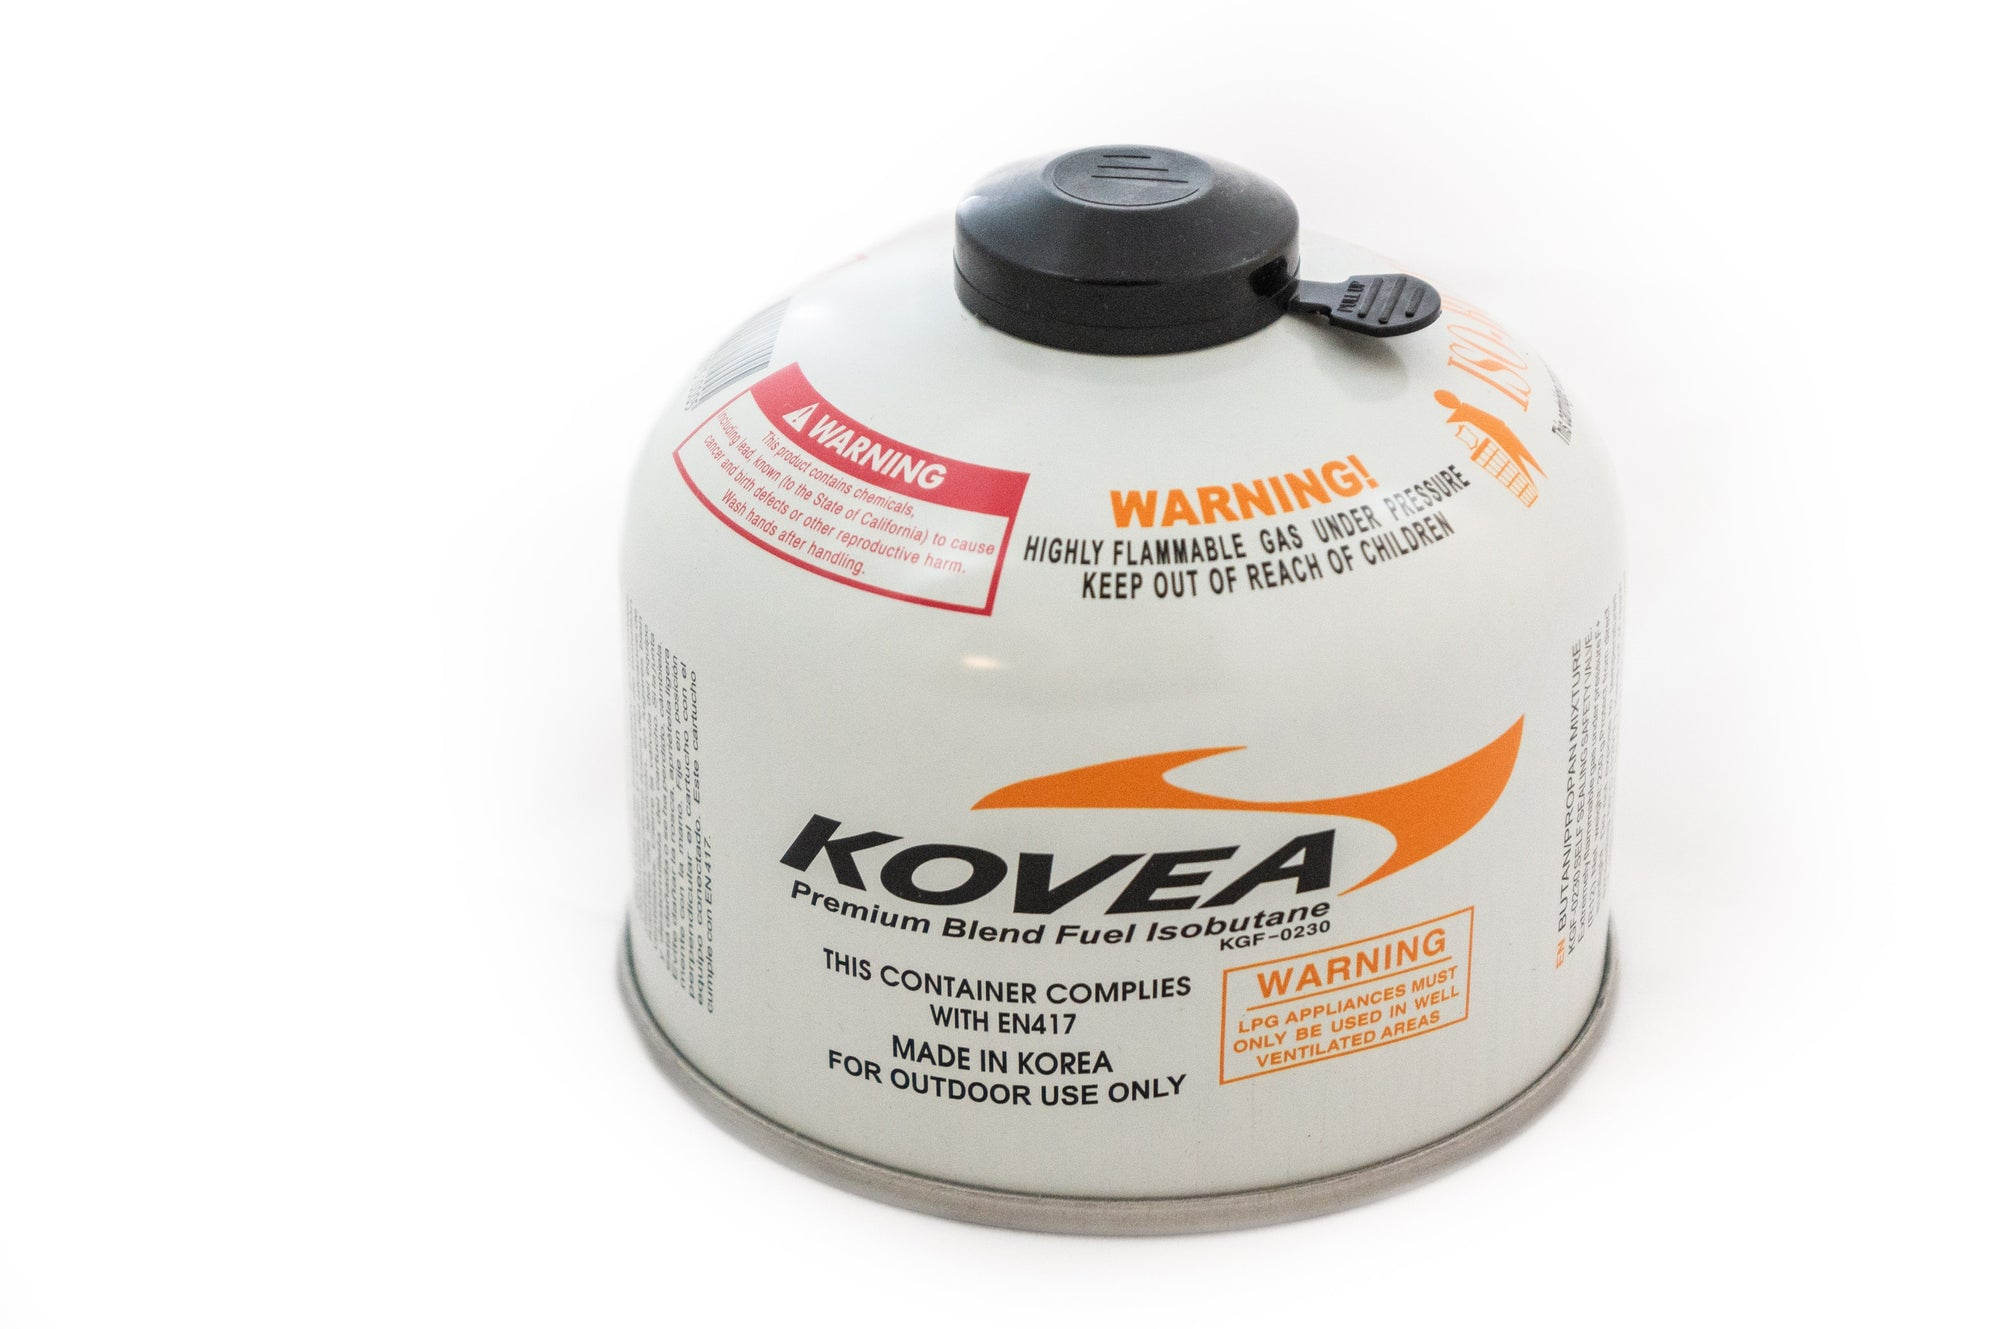 Kovea 230g Screw-on style Isobutane gas canister - Bulk Pack of 24